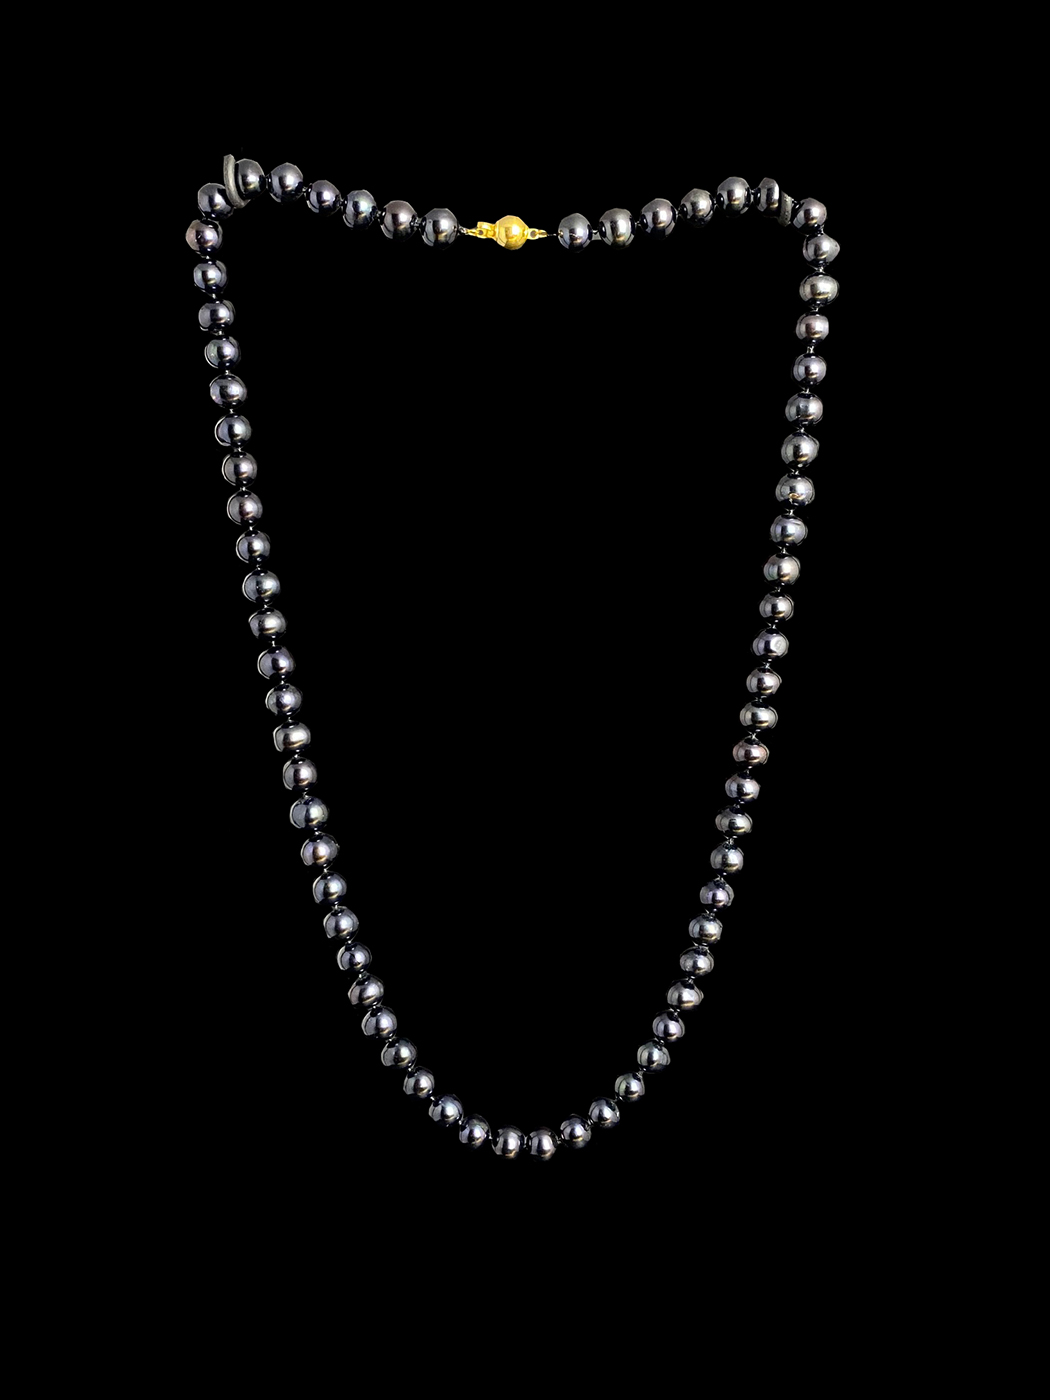 Cultured Black Pearl Necklace